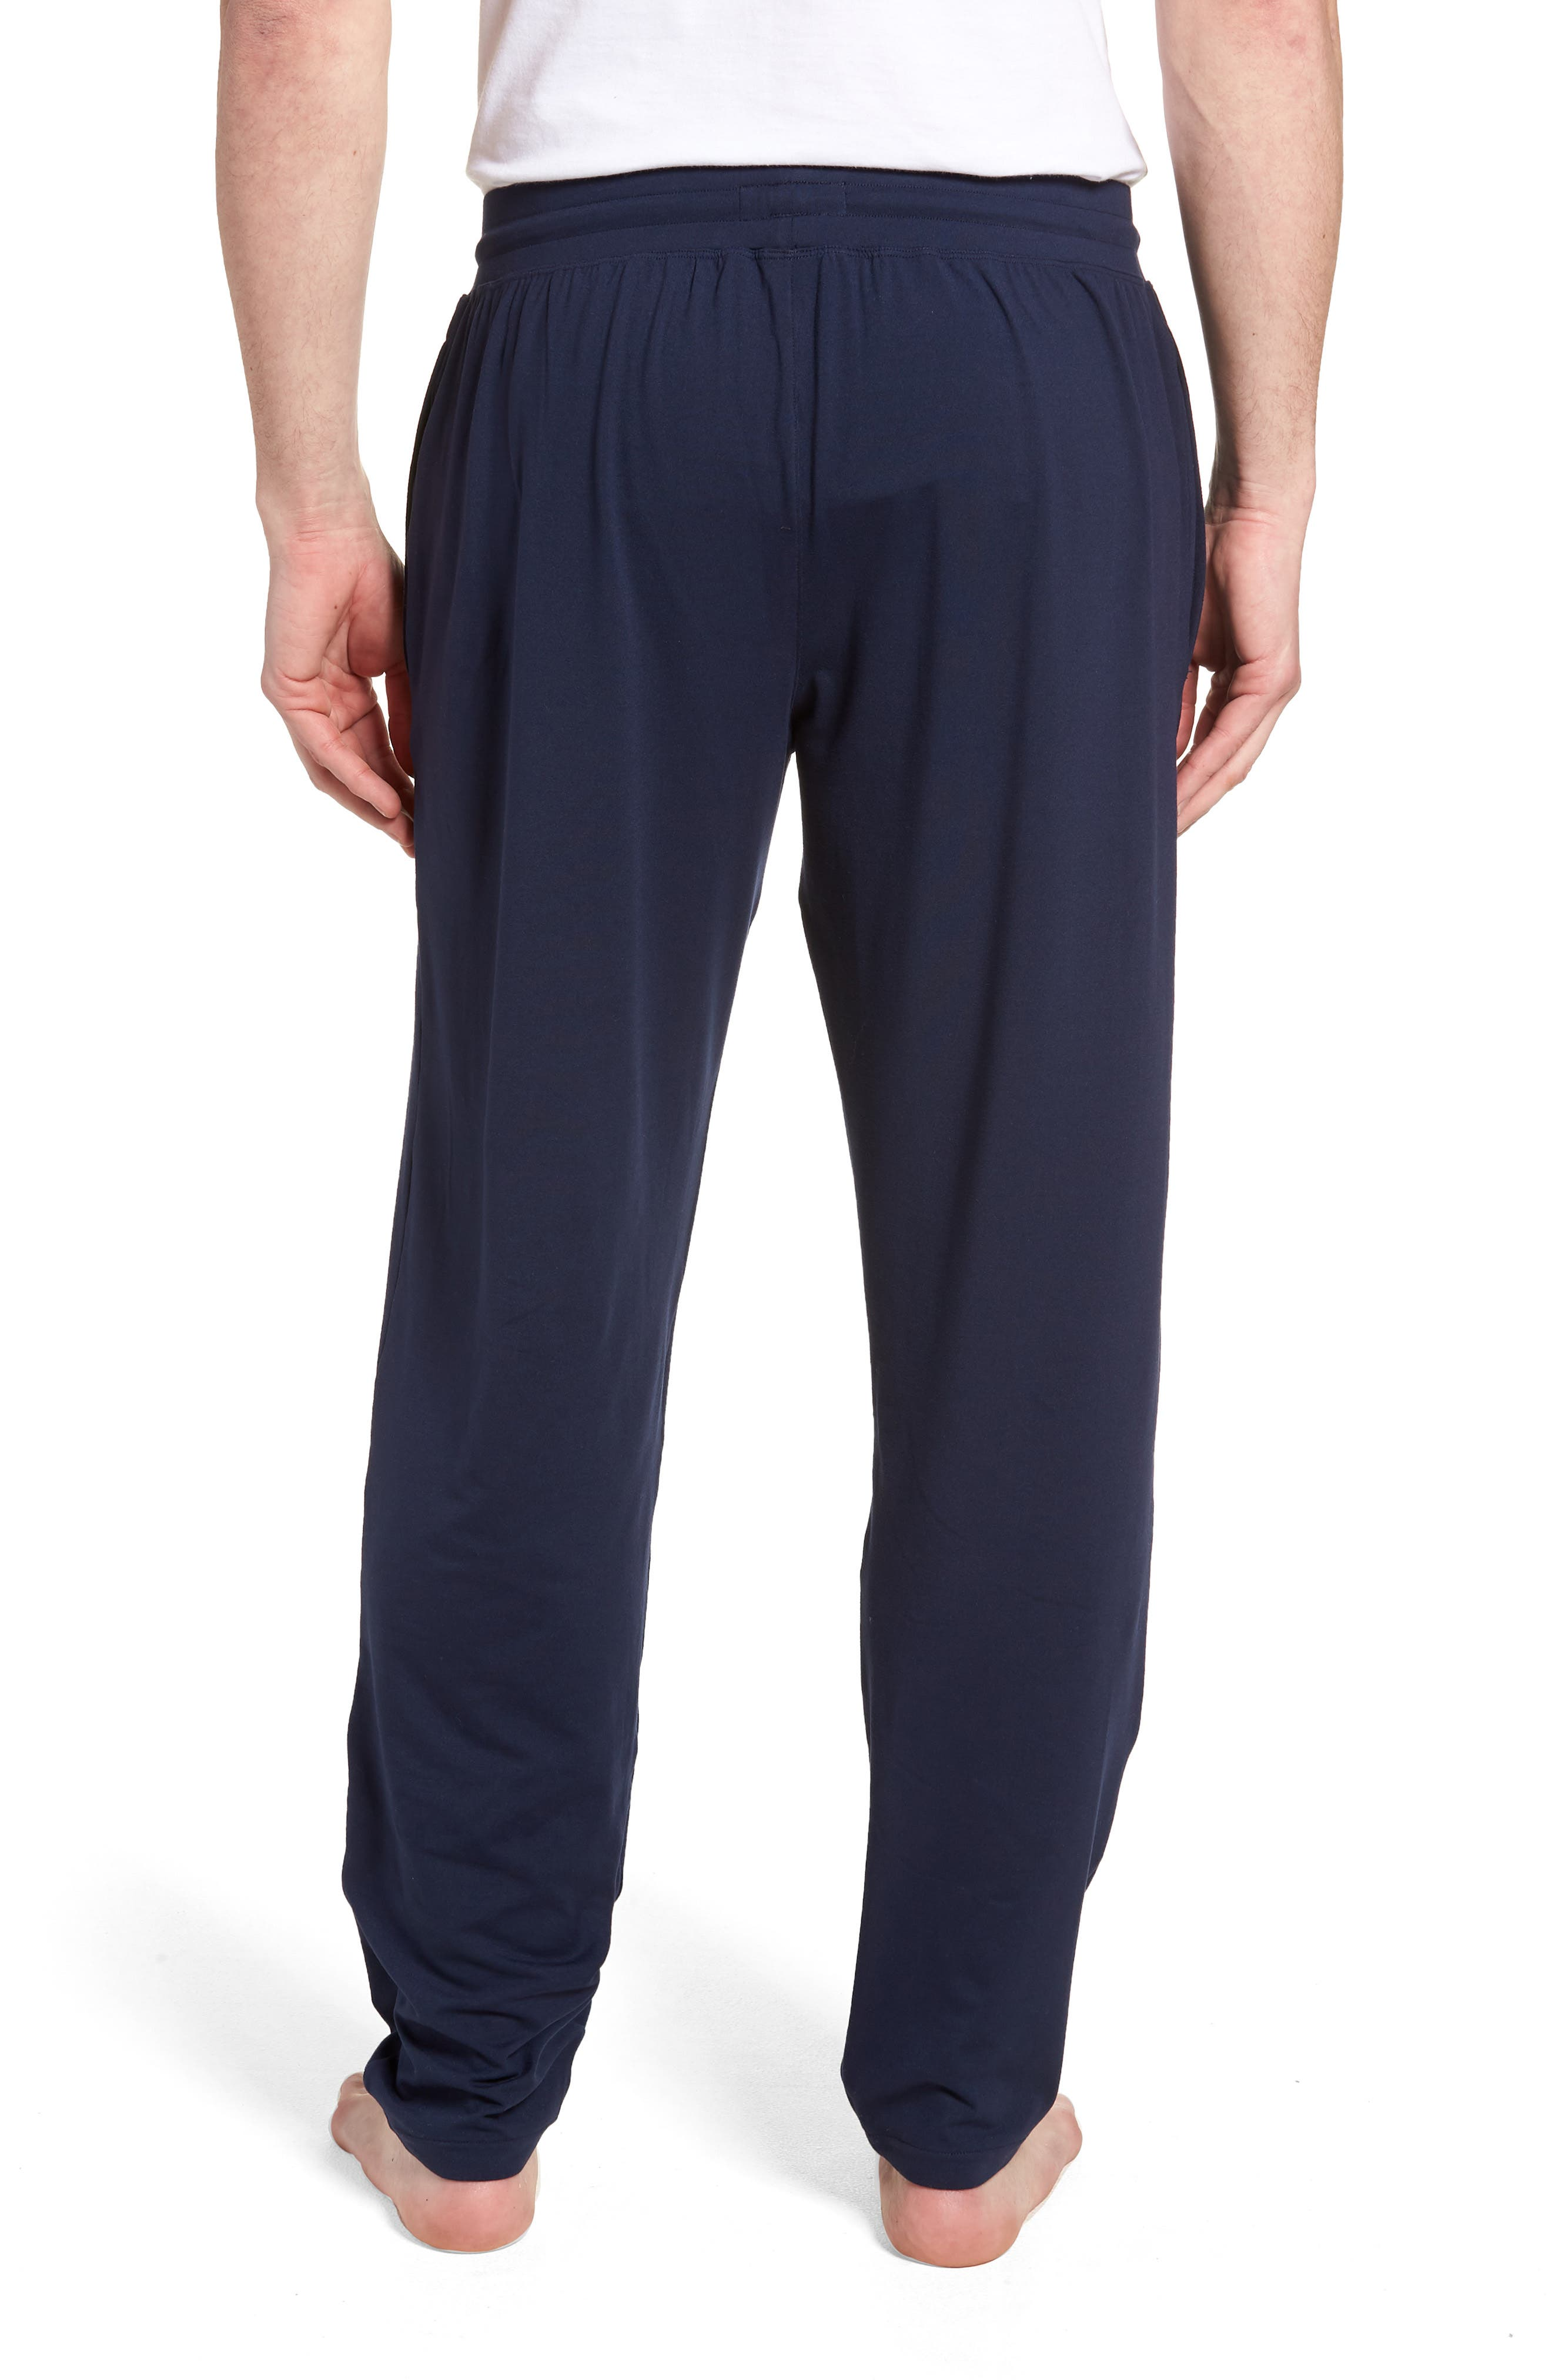 Therma Lounge Pants,                             Alternate thumbnail 2, color,                             Cruise Navy/ Nevis